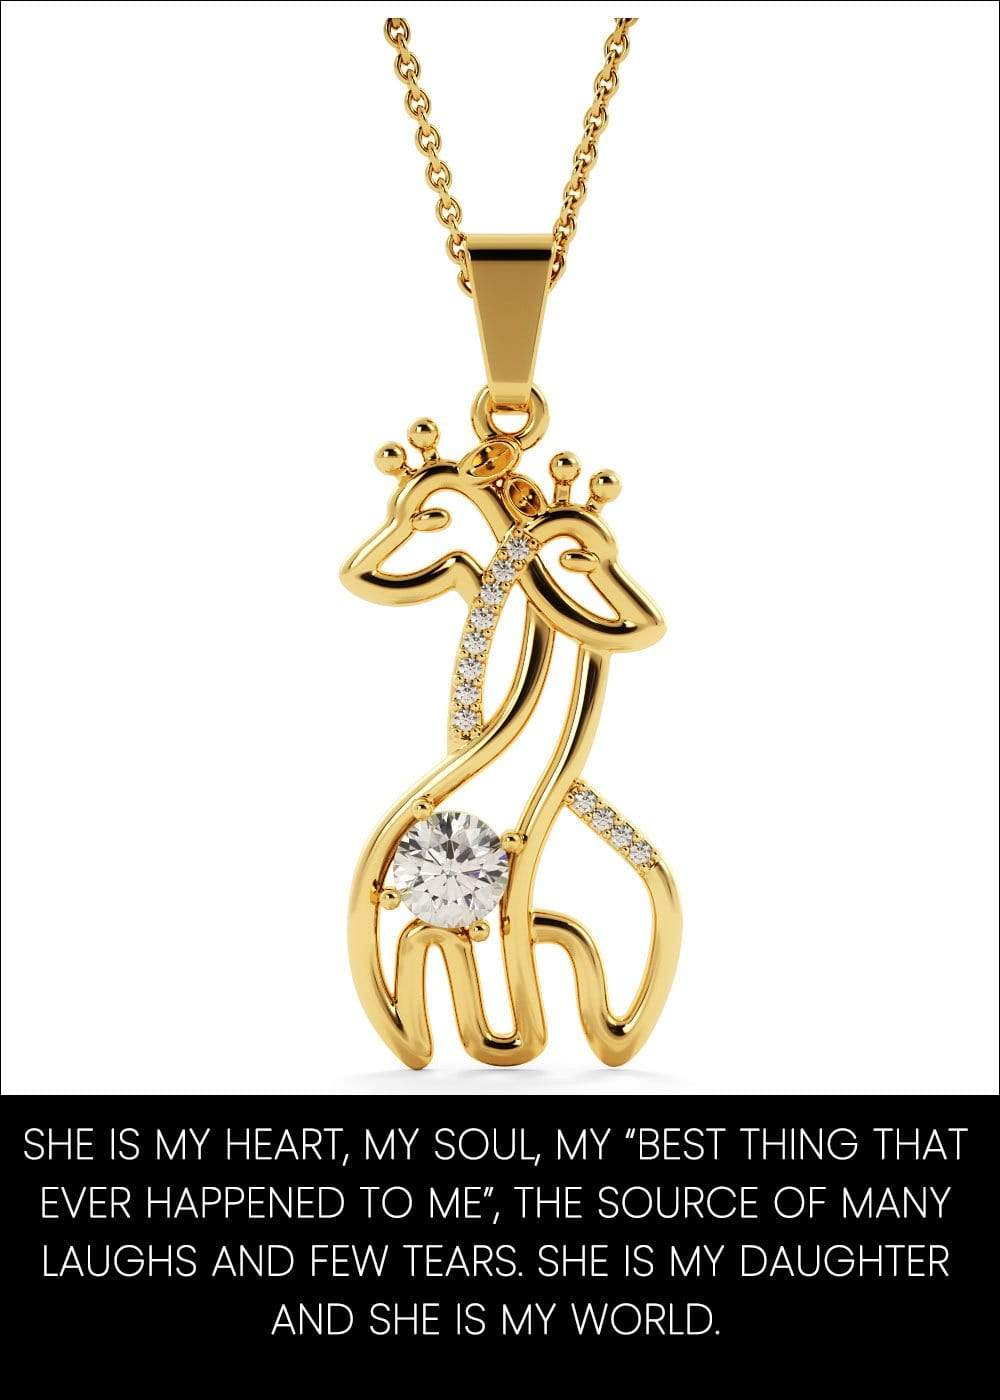 From Mom To Daughter With Love Giraffe Necklace